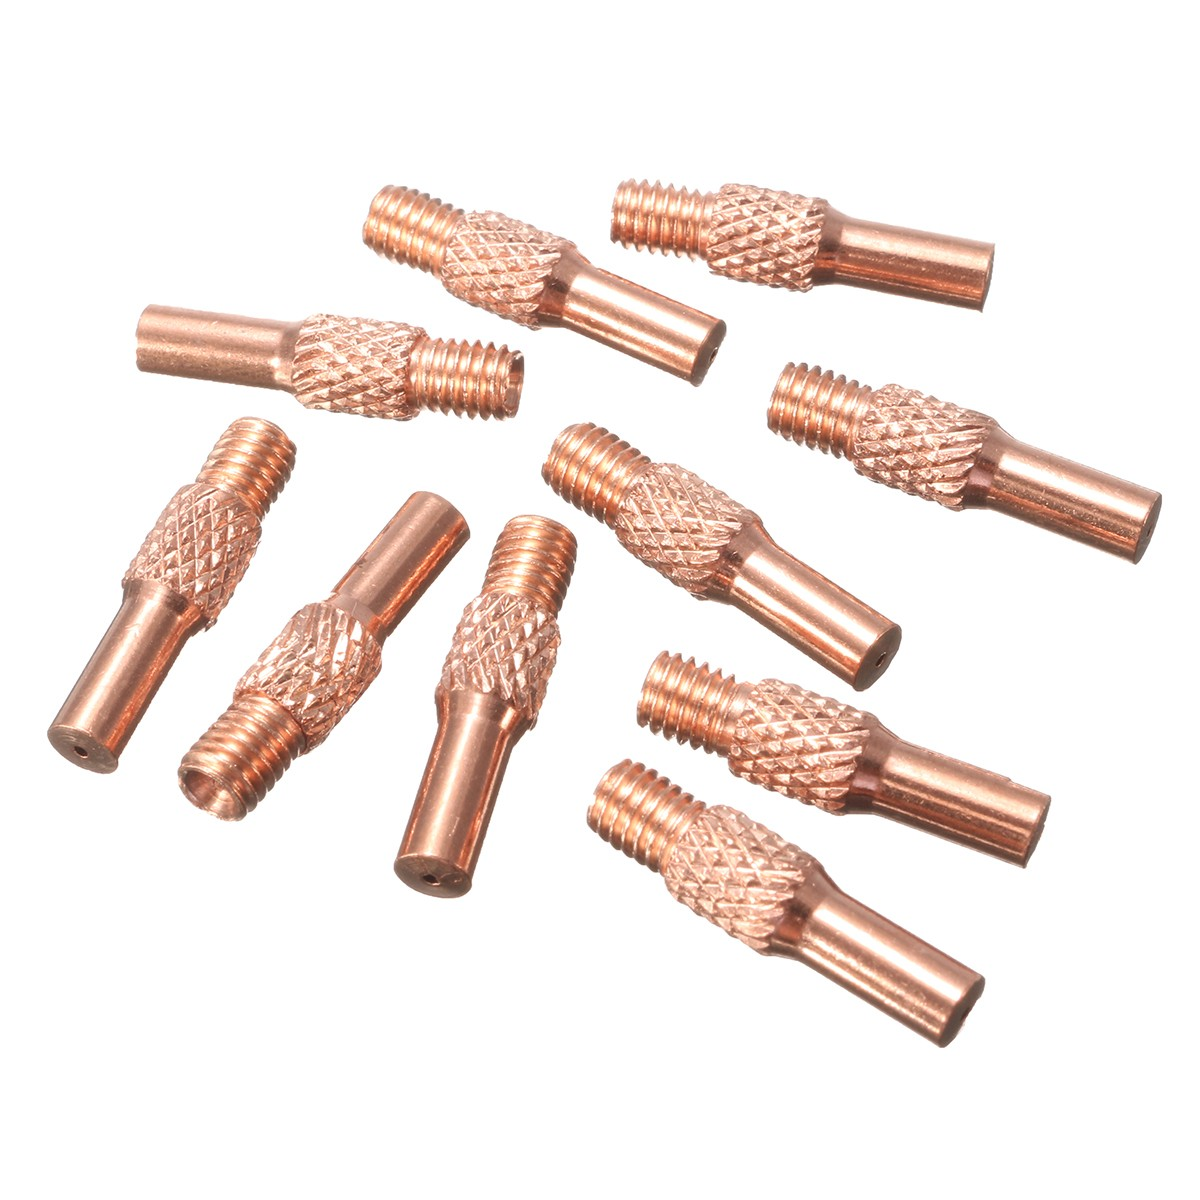 10pcs Welding Gun Contact Tips 0.8mm For MIG Spool Gun Push Pull Feeder Torch